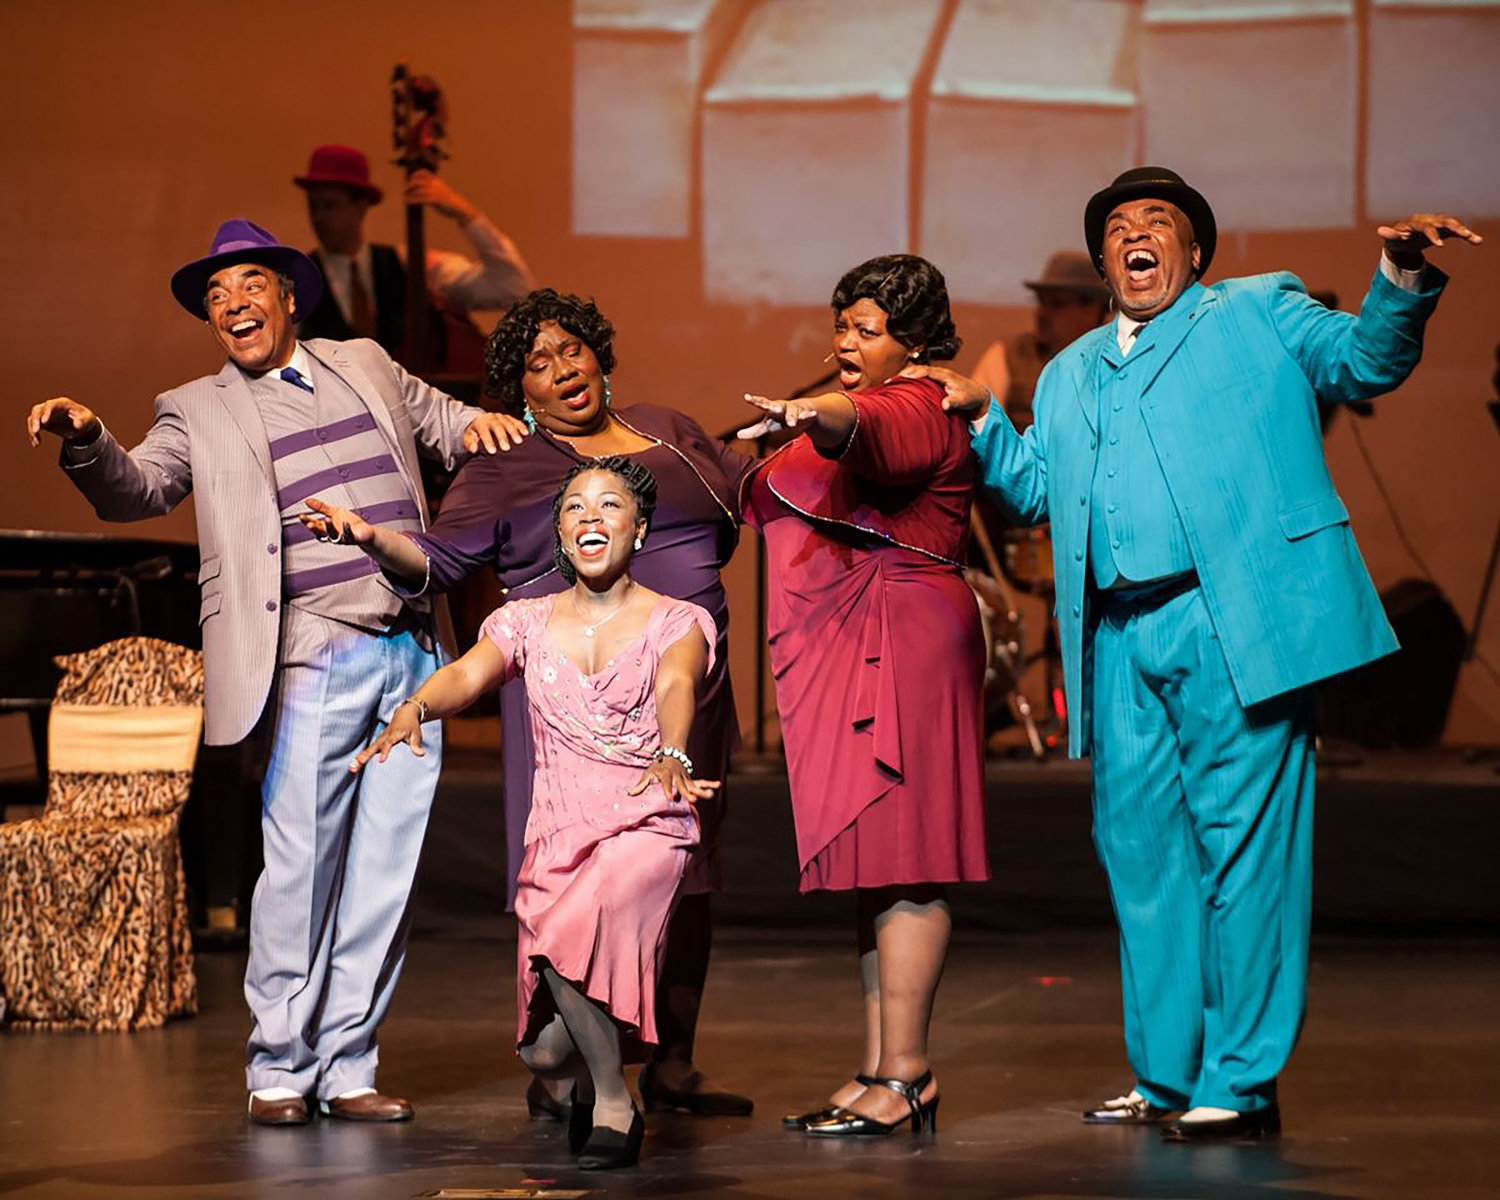 Fans of the musical 'Ain't Misbehavin'' can catch a performance of it at the Lehman Center for the Performing Arts on Jan. 18.